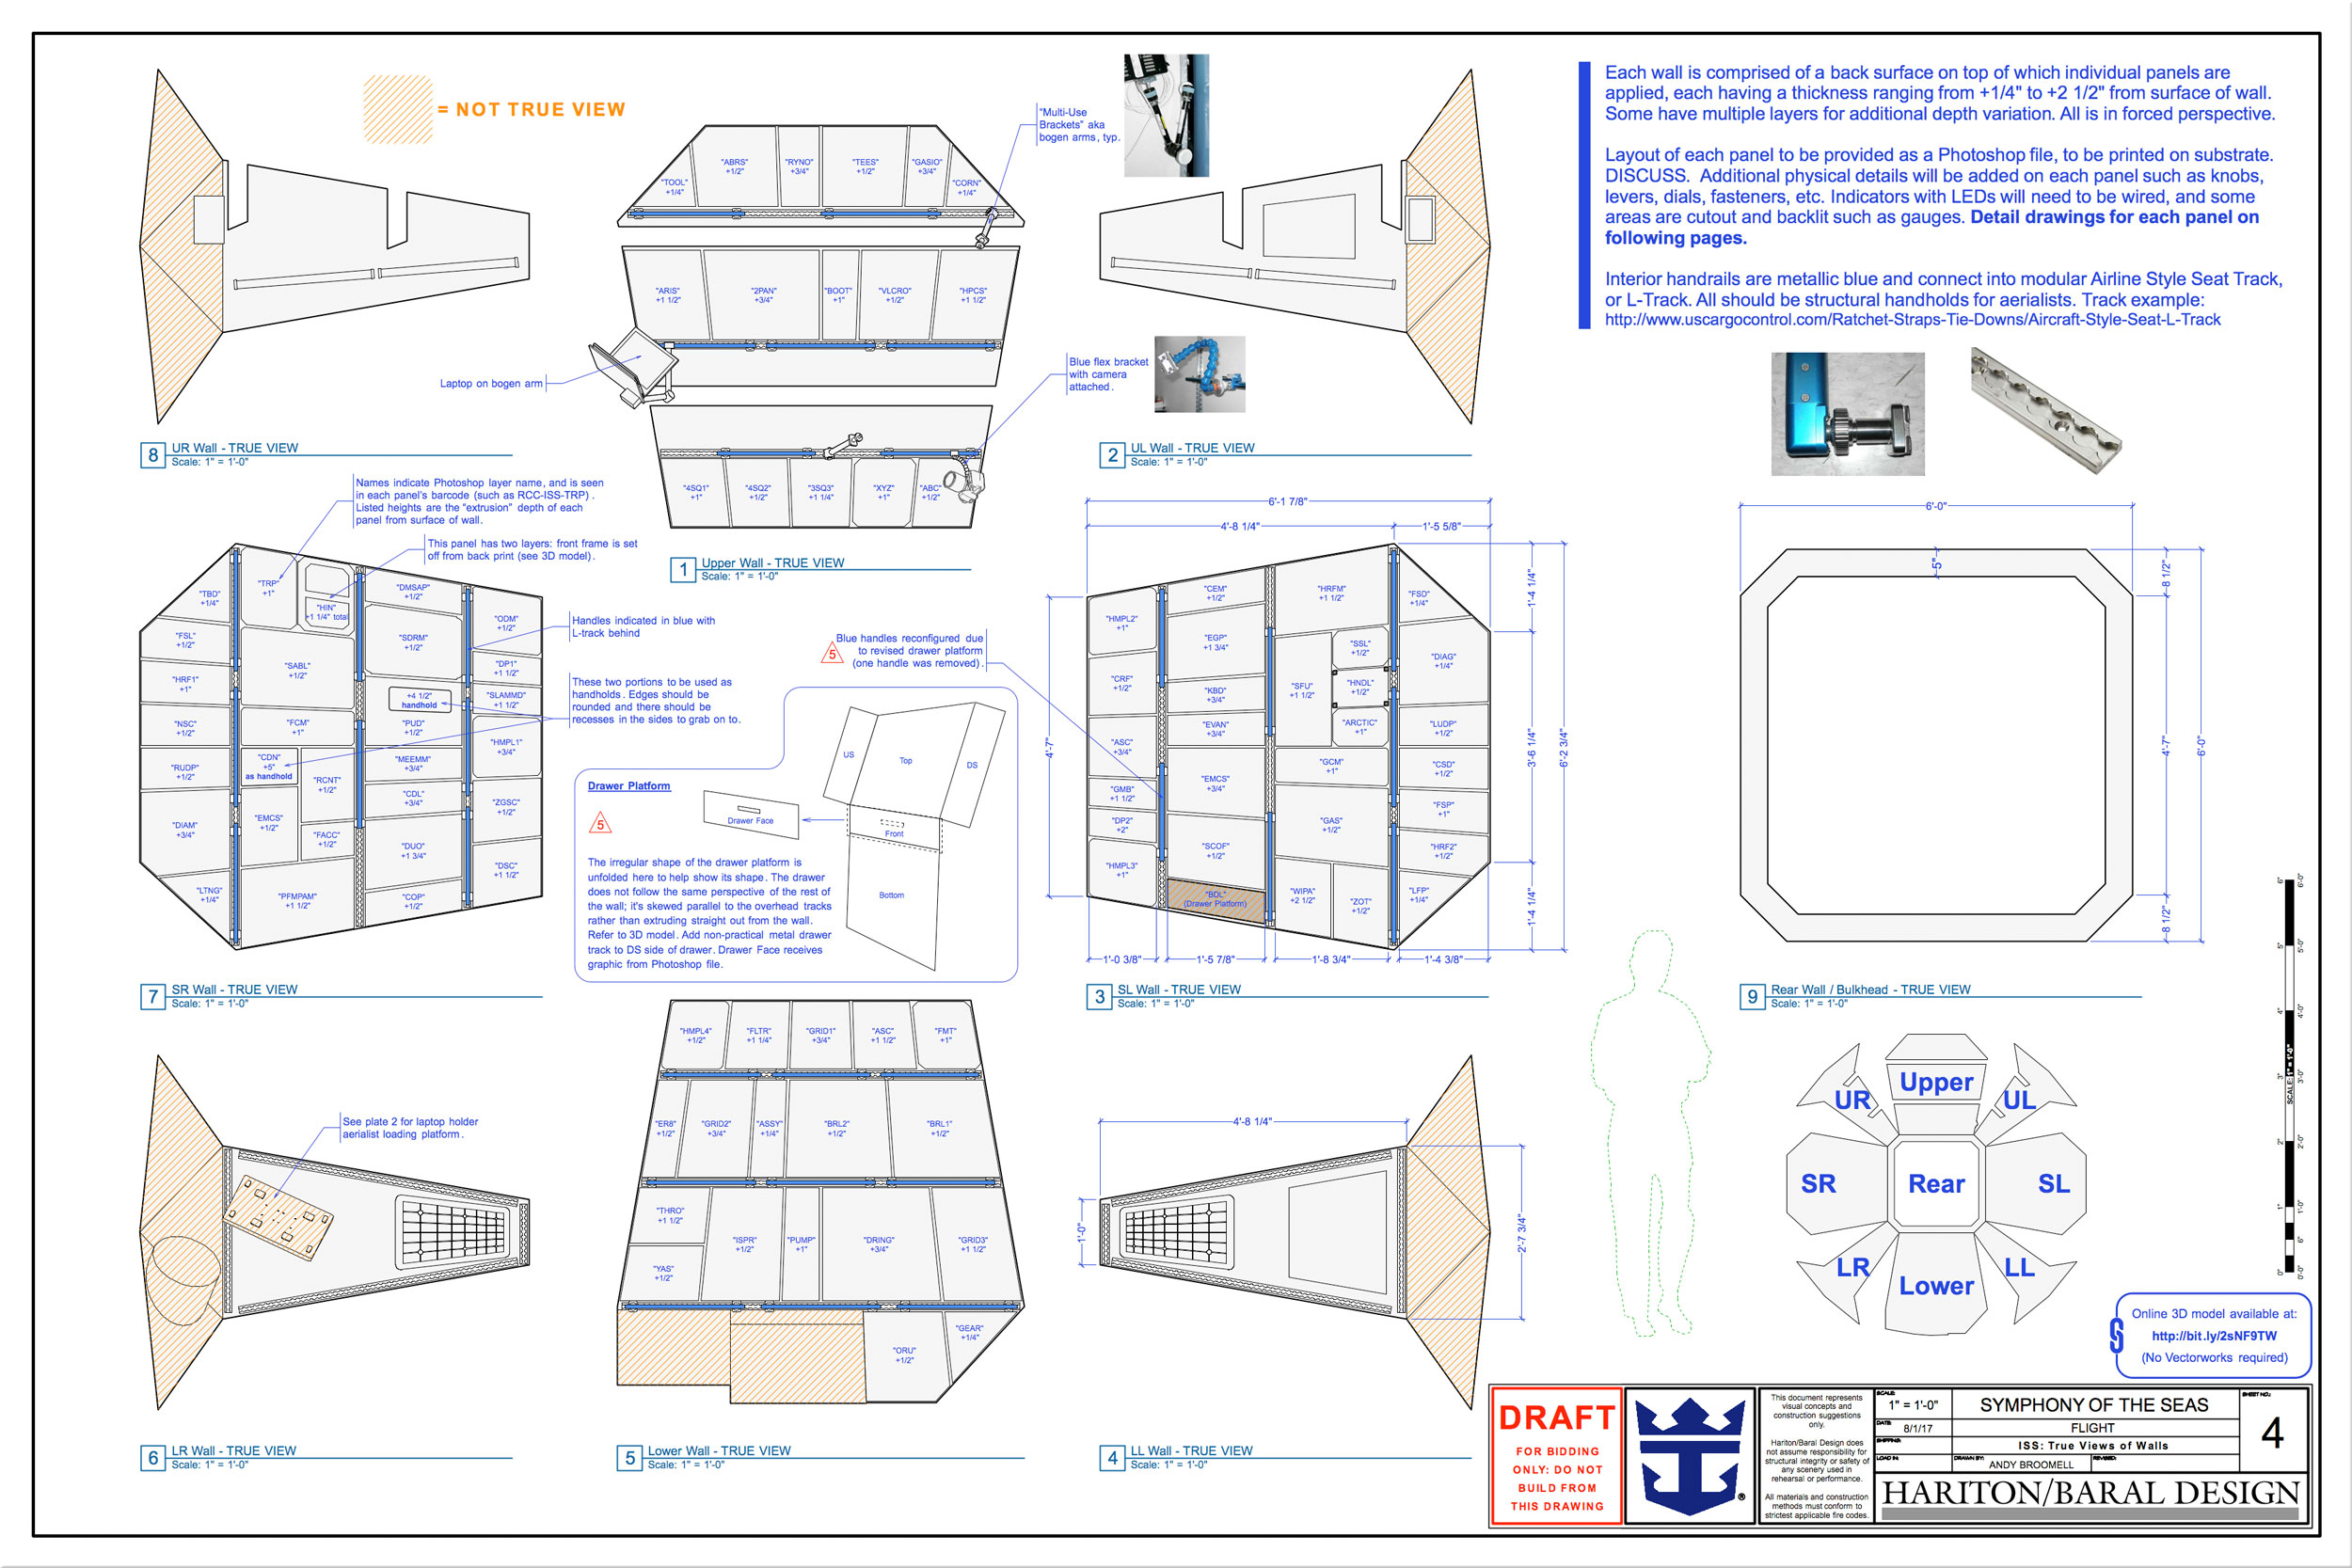 andy-broomell-vectorworks-drafting-iss-4.jpg